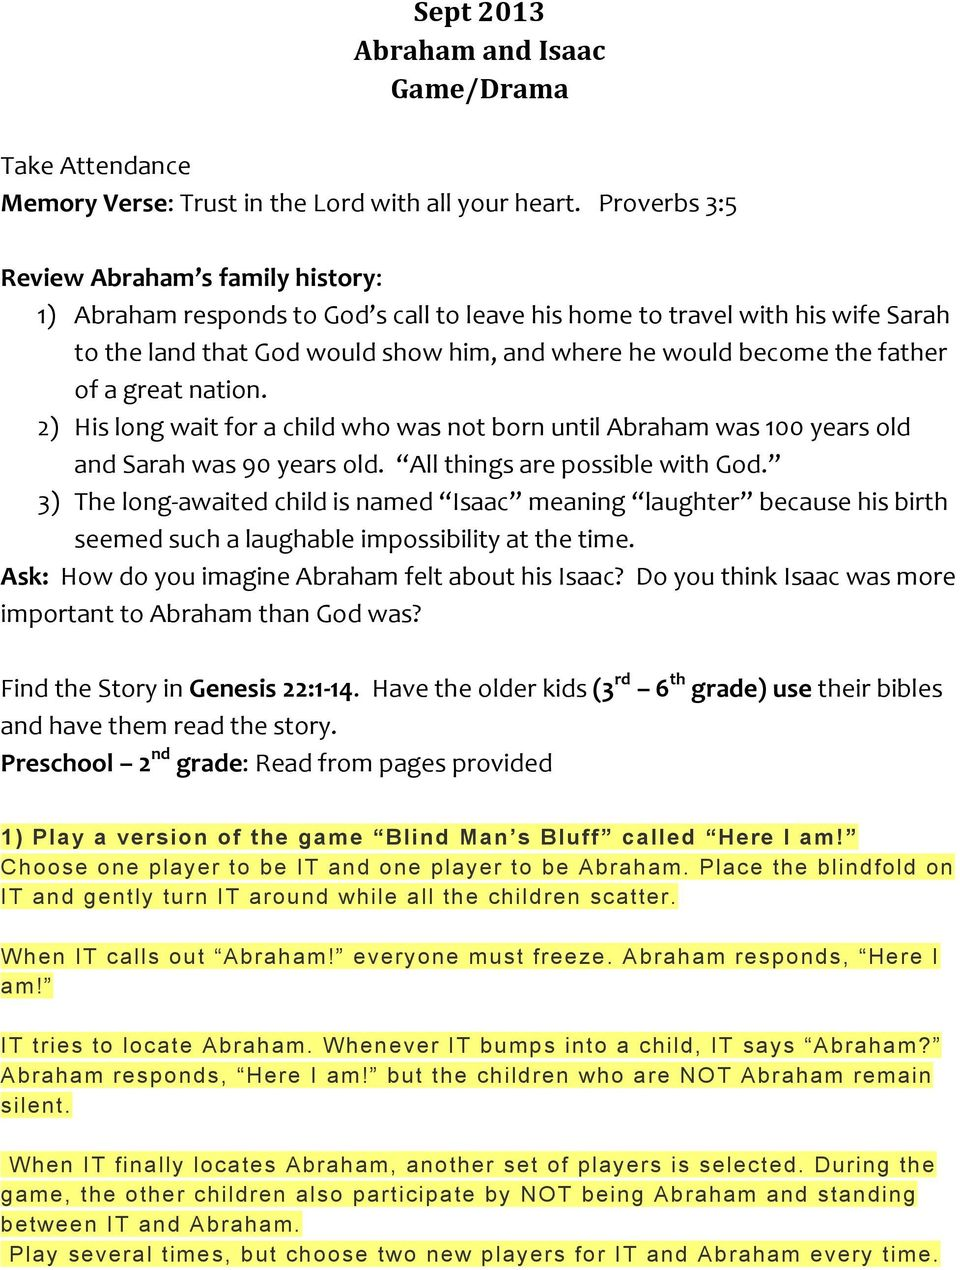 hight resolution of Sept 2013 Abraham and Isaac Game/Drama - PDF Free Download